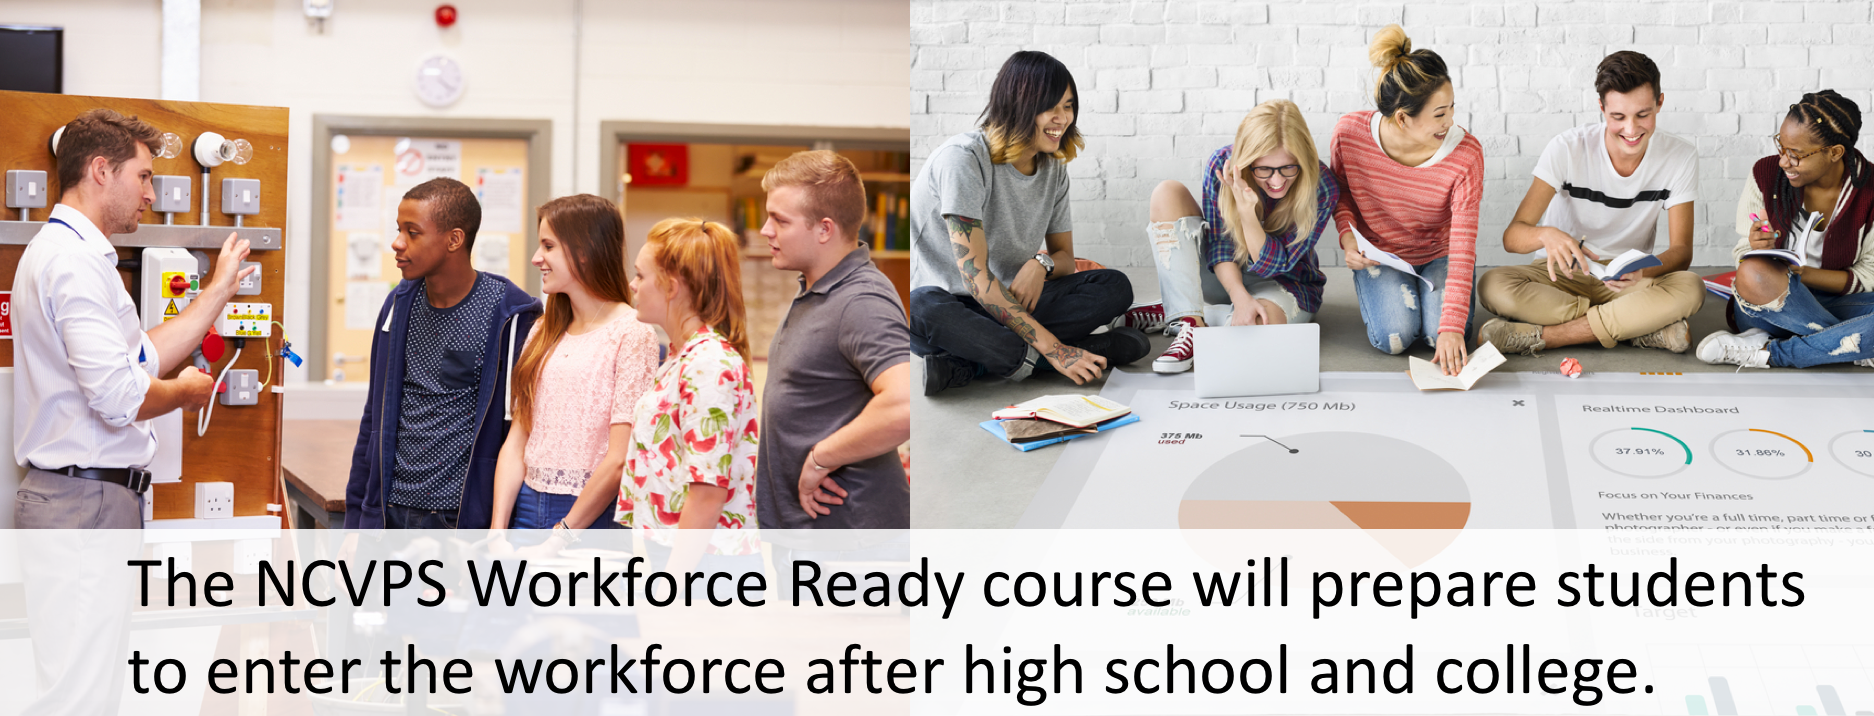 The NCVPS Workforce Ready course will prepare students to enter the workforce after high school and college.